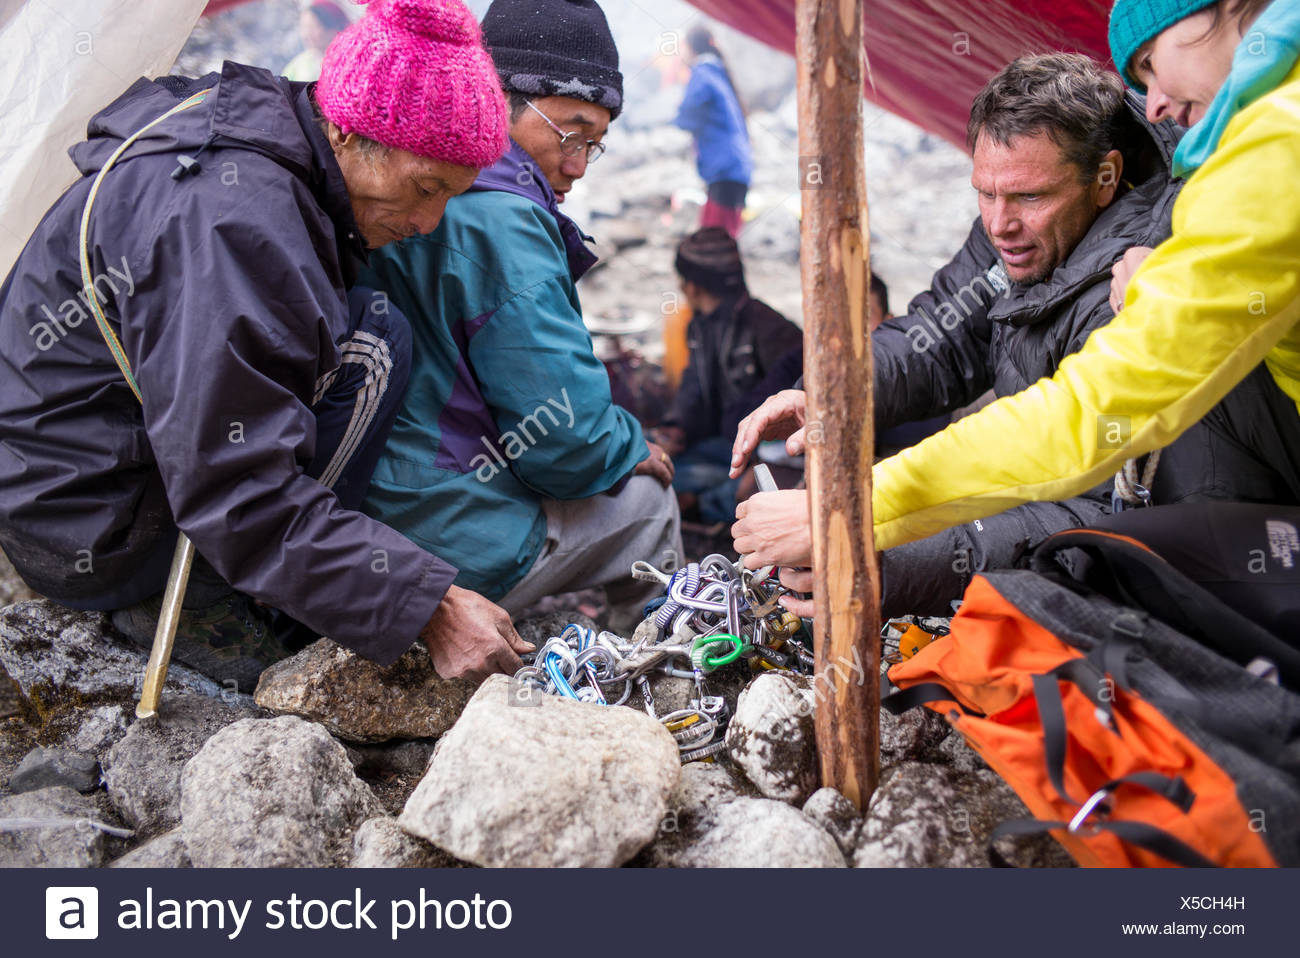 Expedition members check equipment with the help of local guides. Stock Photo